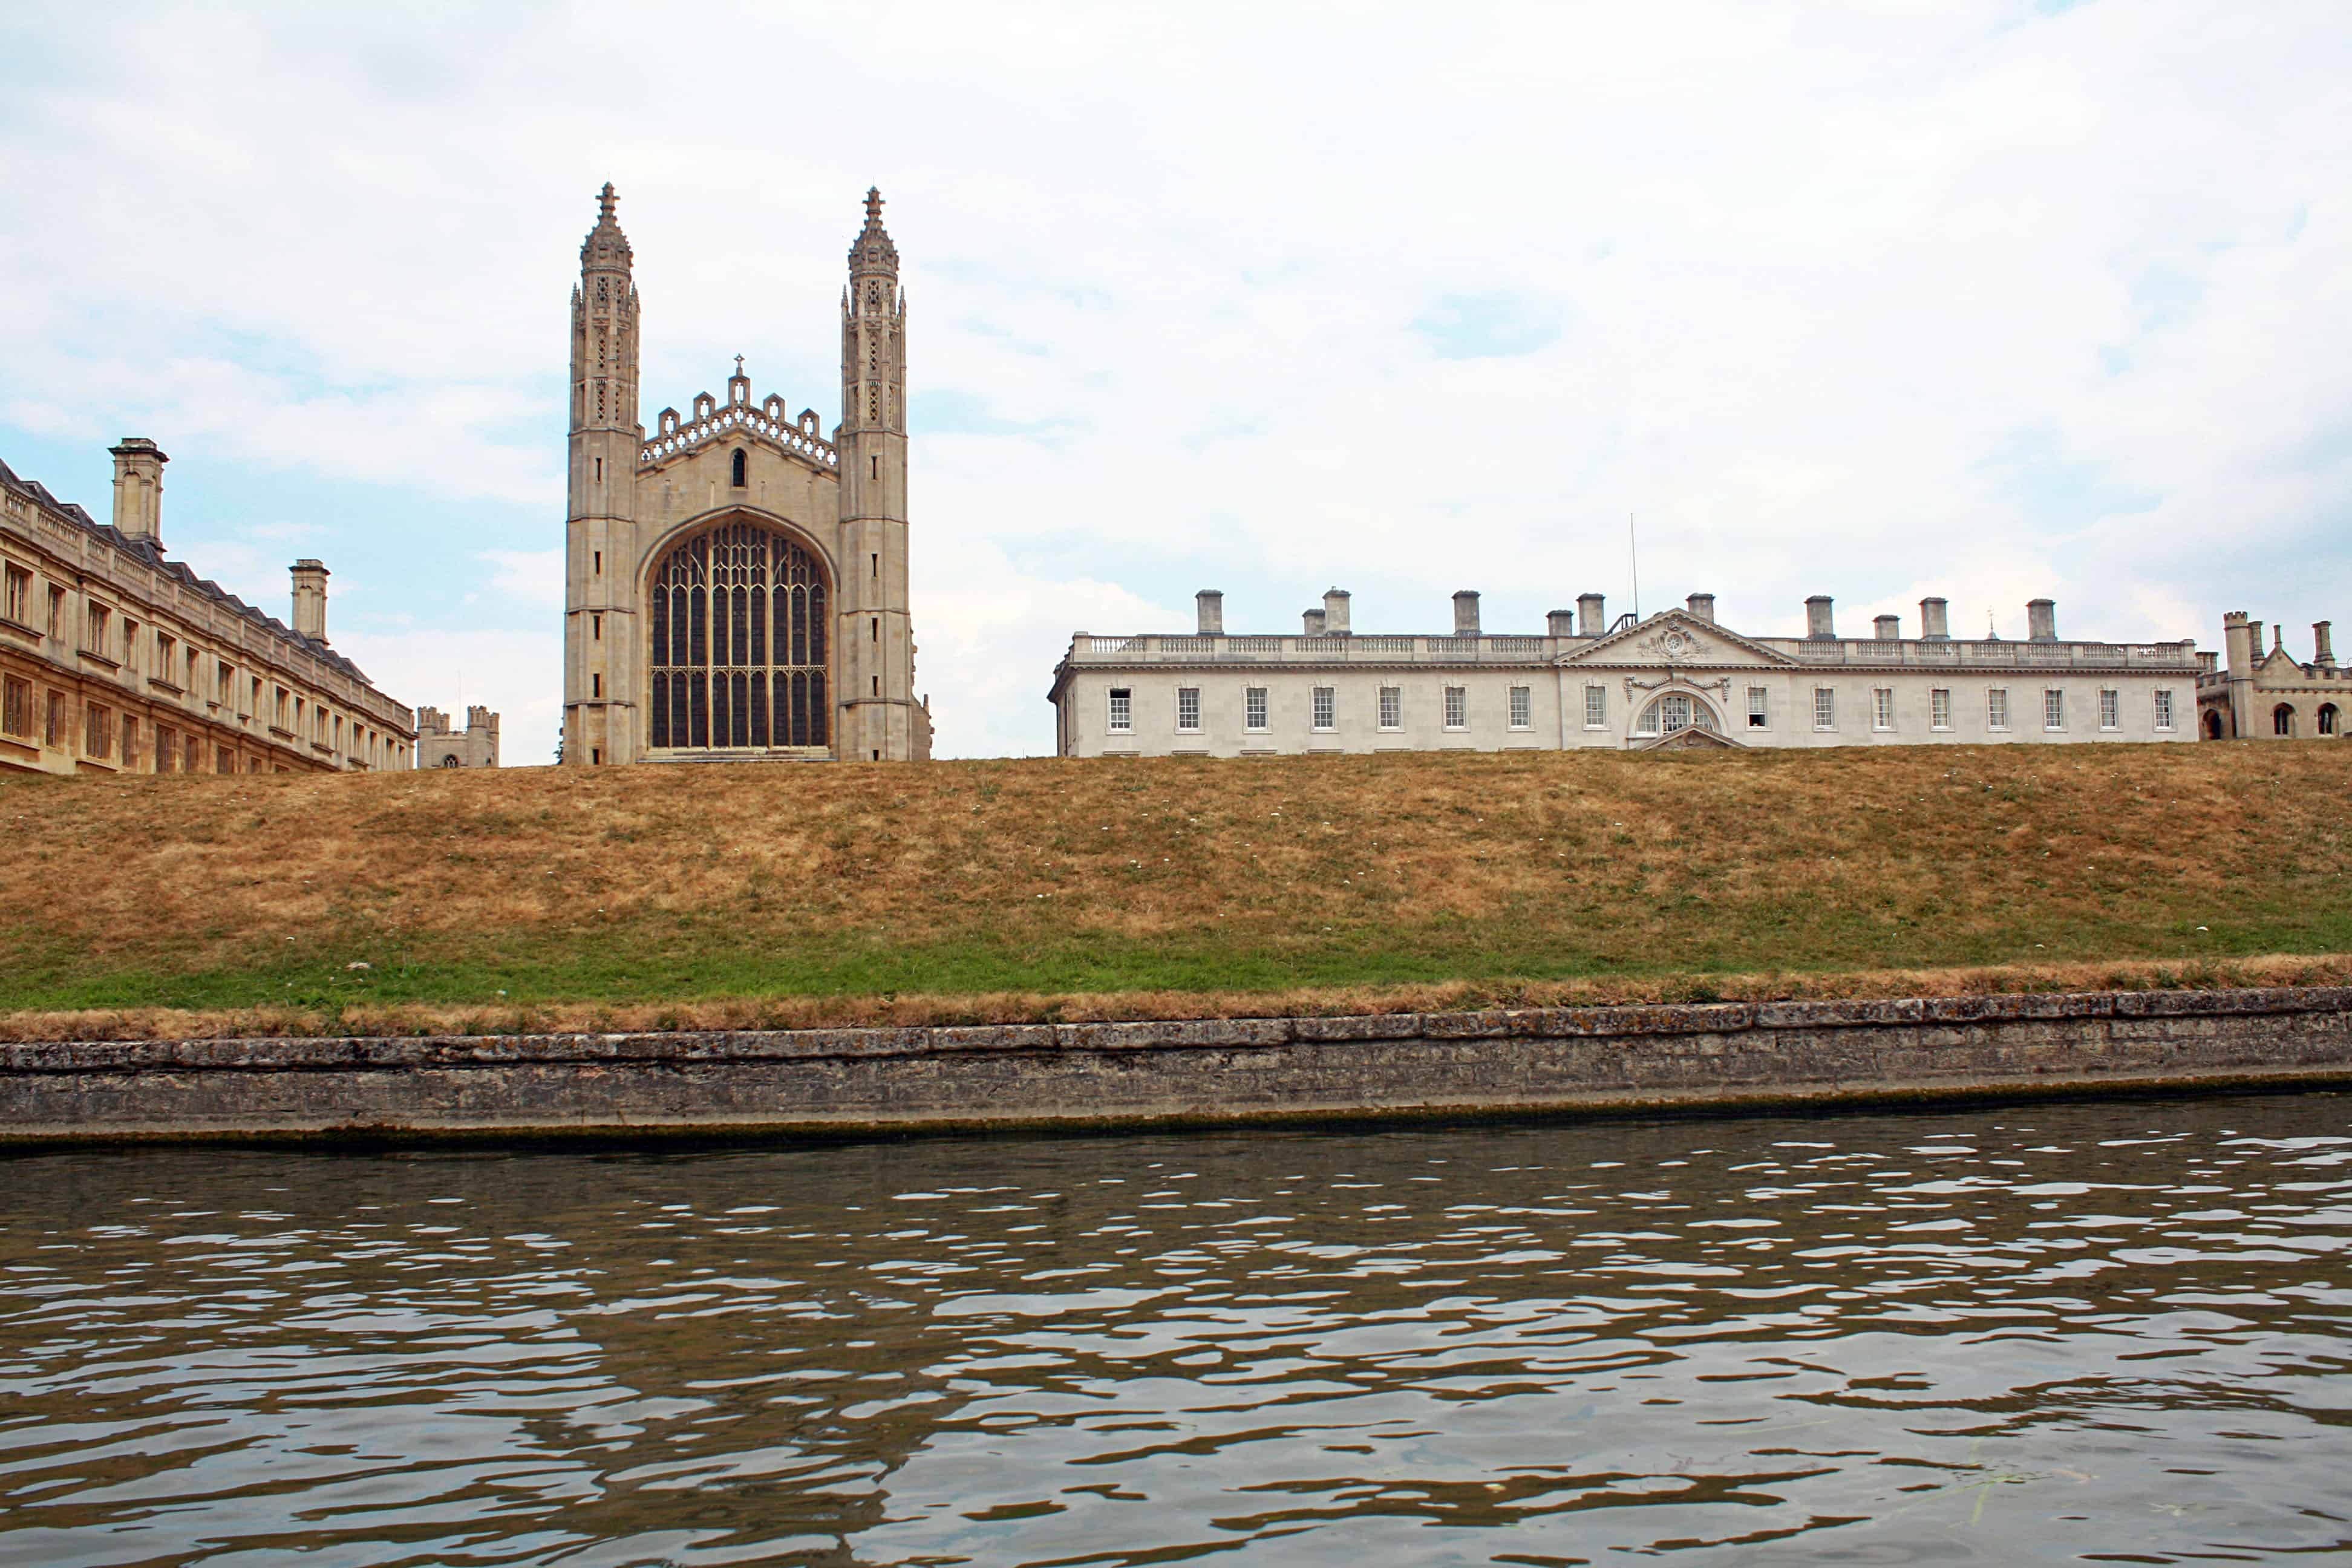 View of King's College Cambridge from the River Cam